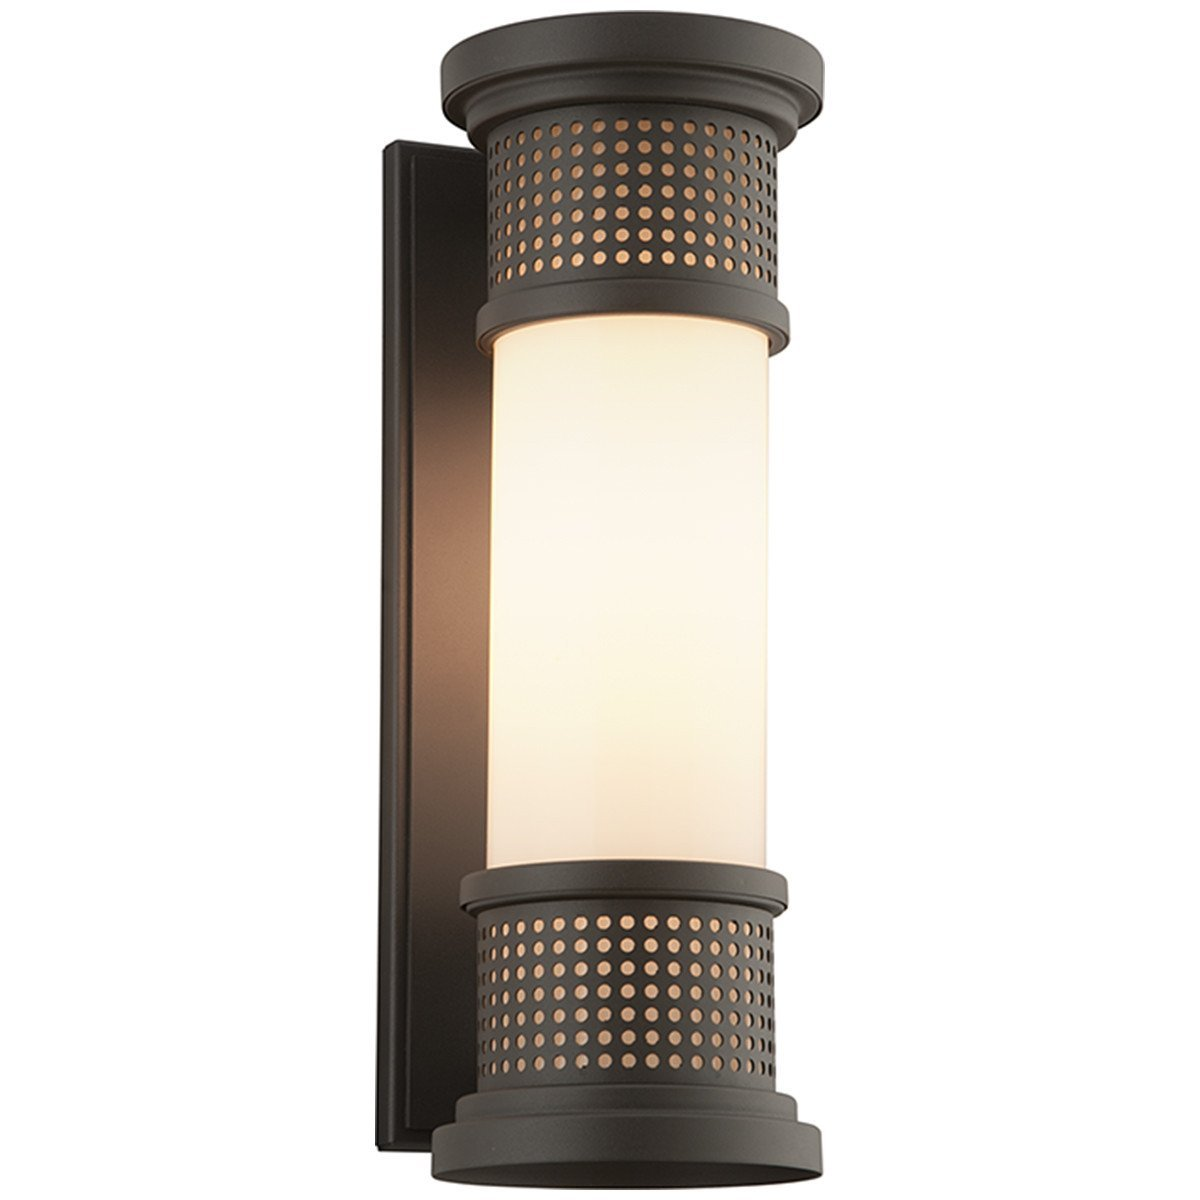 Troy lighting mcqueen light led outdoor wall sconce products